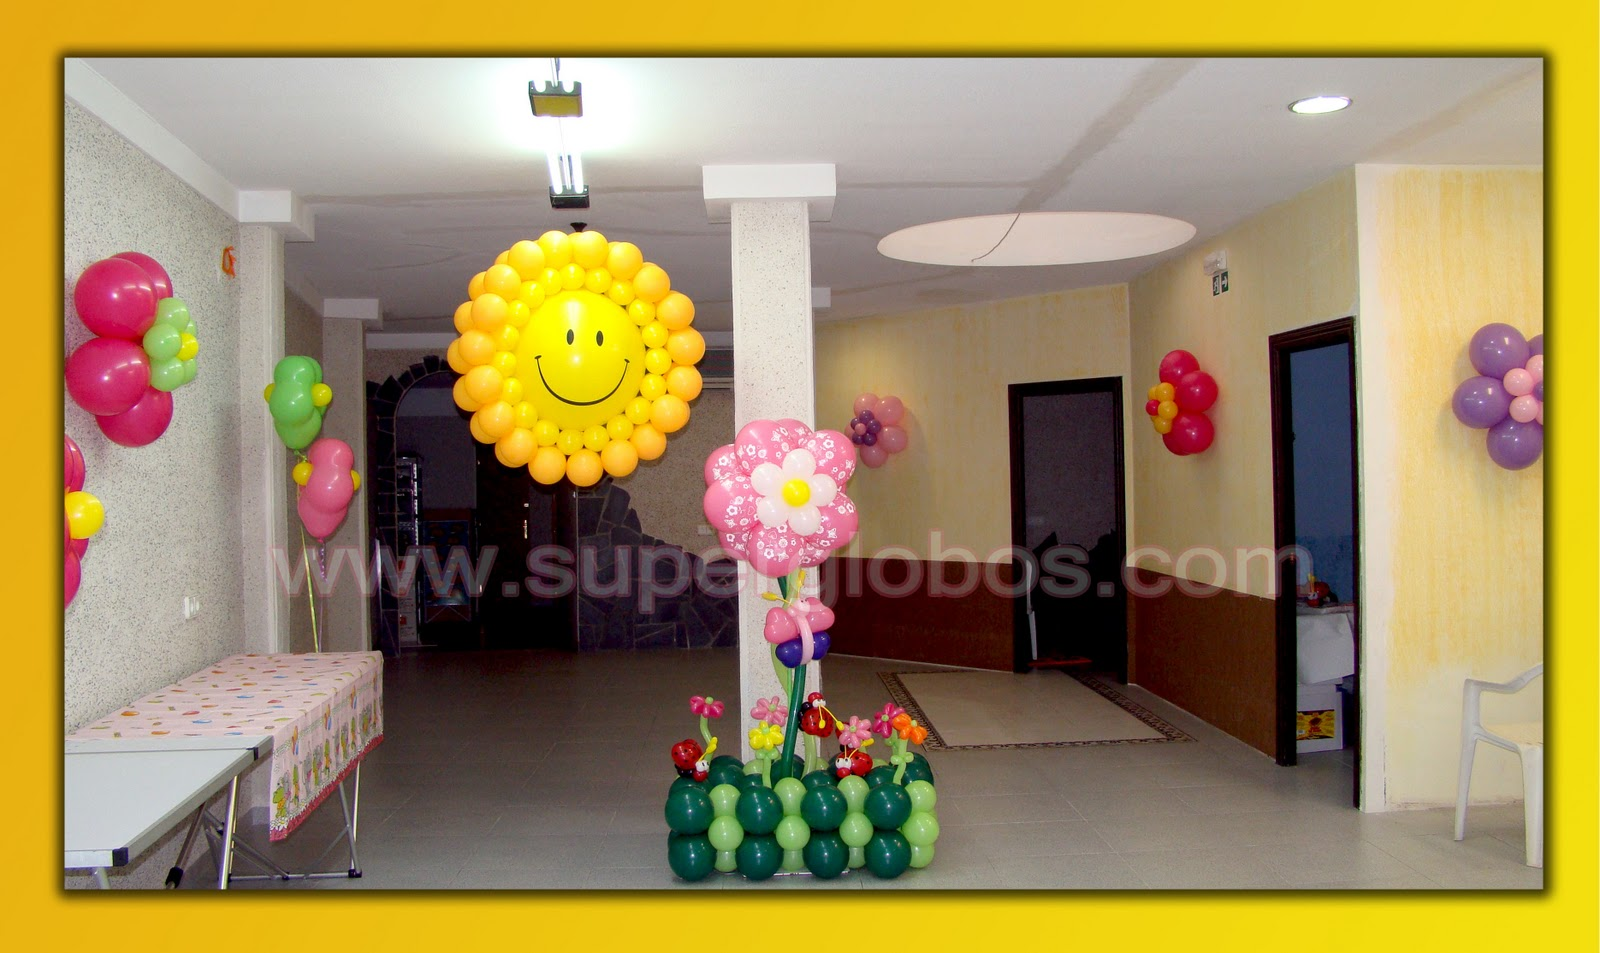 Dise os con globos para fiestas infantiles decoraci n for Fotos de decoraciones